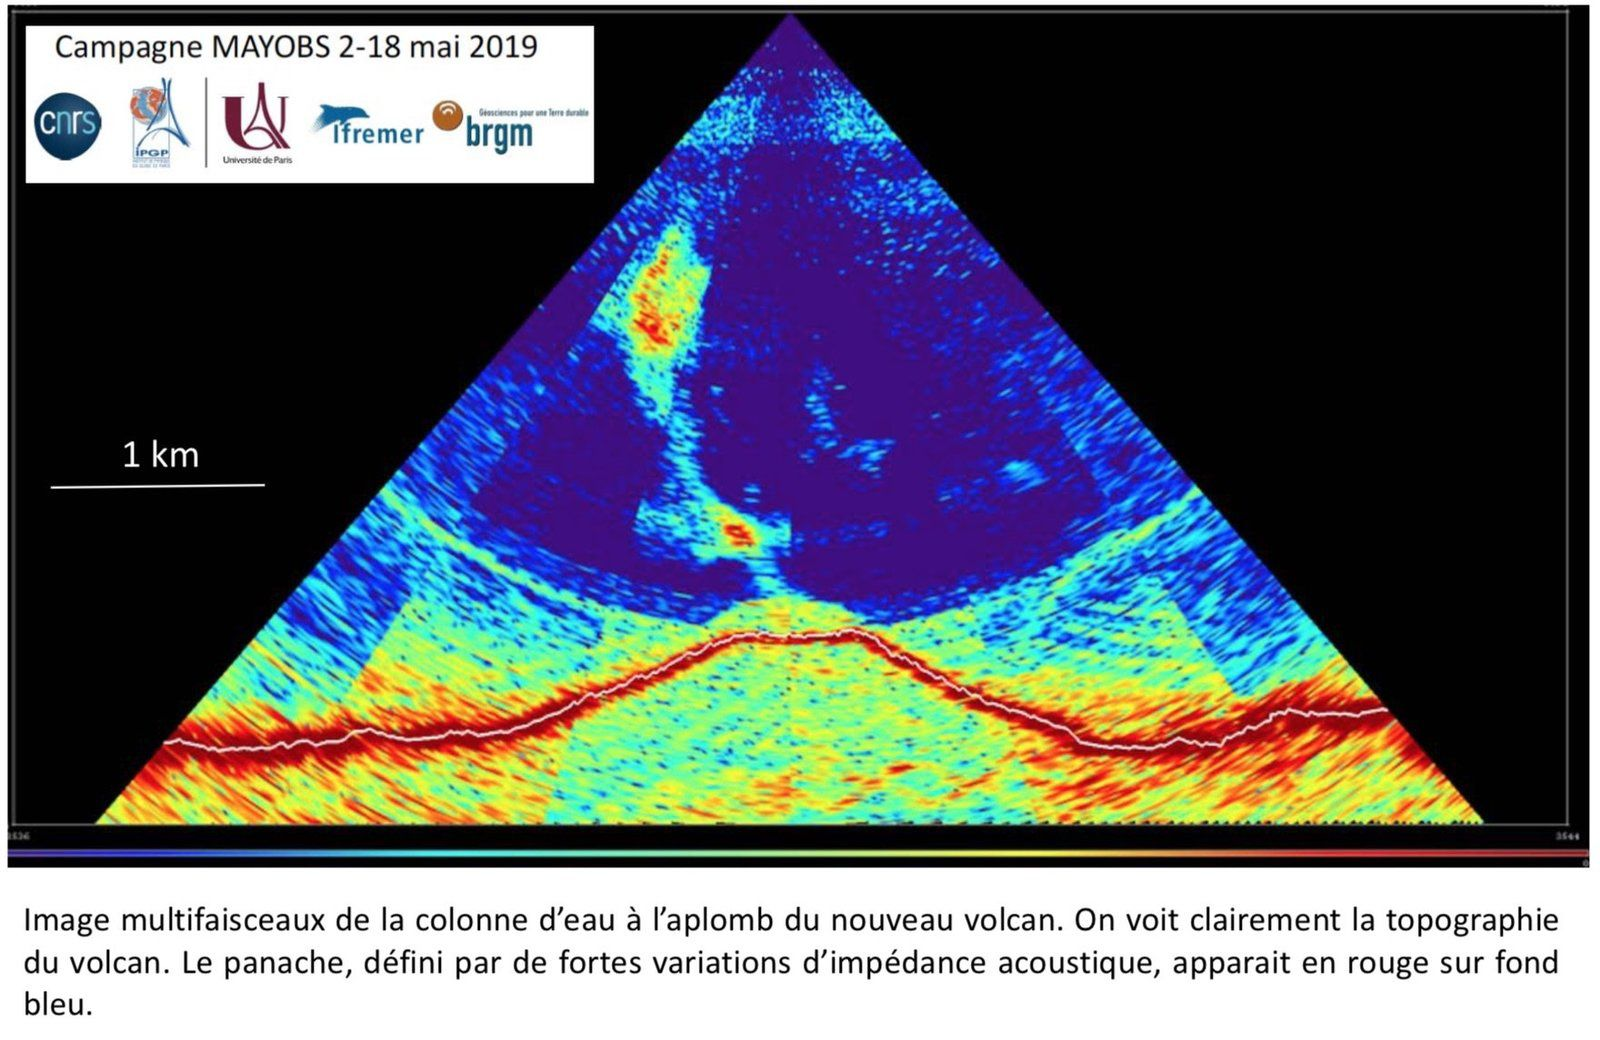 Mayotte - topography of the new volcano and his plume - Doc. MAYOBS campaign from 02 to 18.05.2019 - CNRS / IPGP / IFREMER / BRGM / Univ Paris ; via R.Lacassin